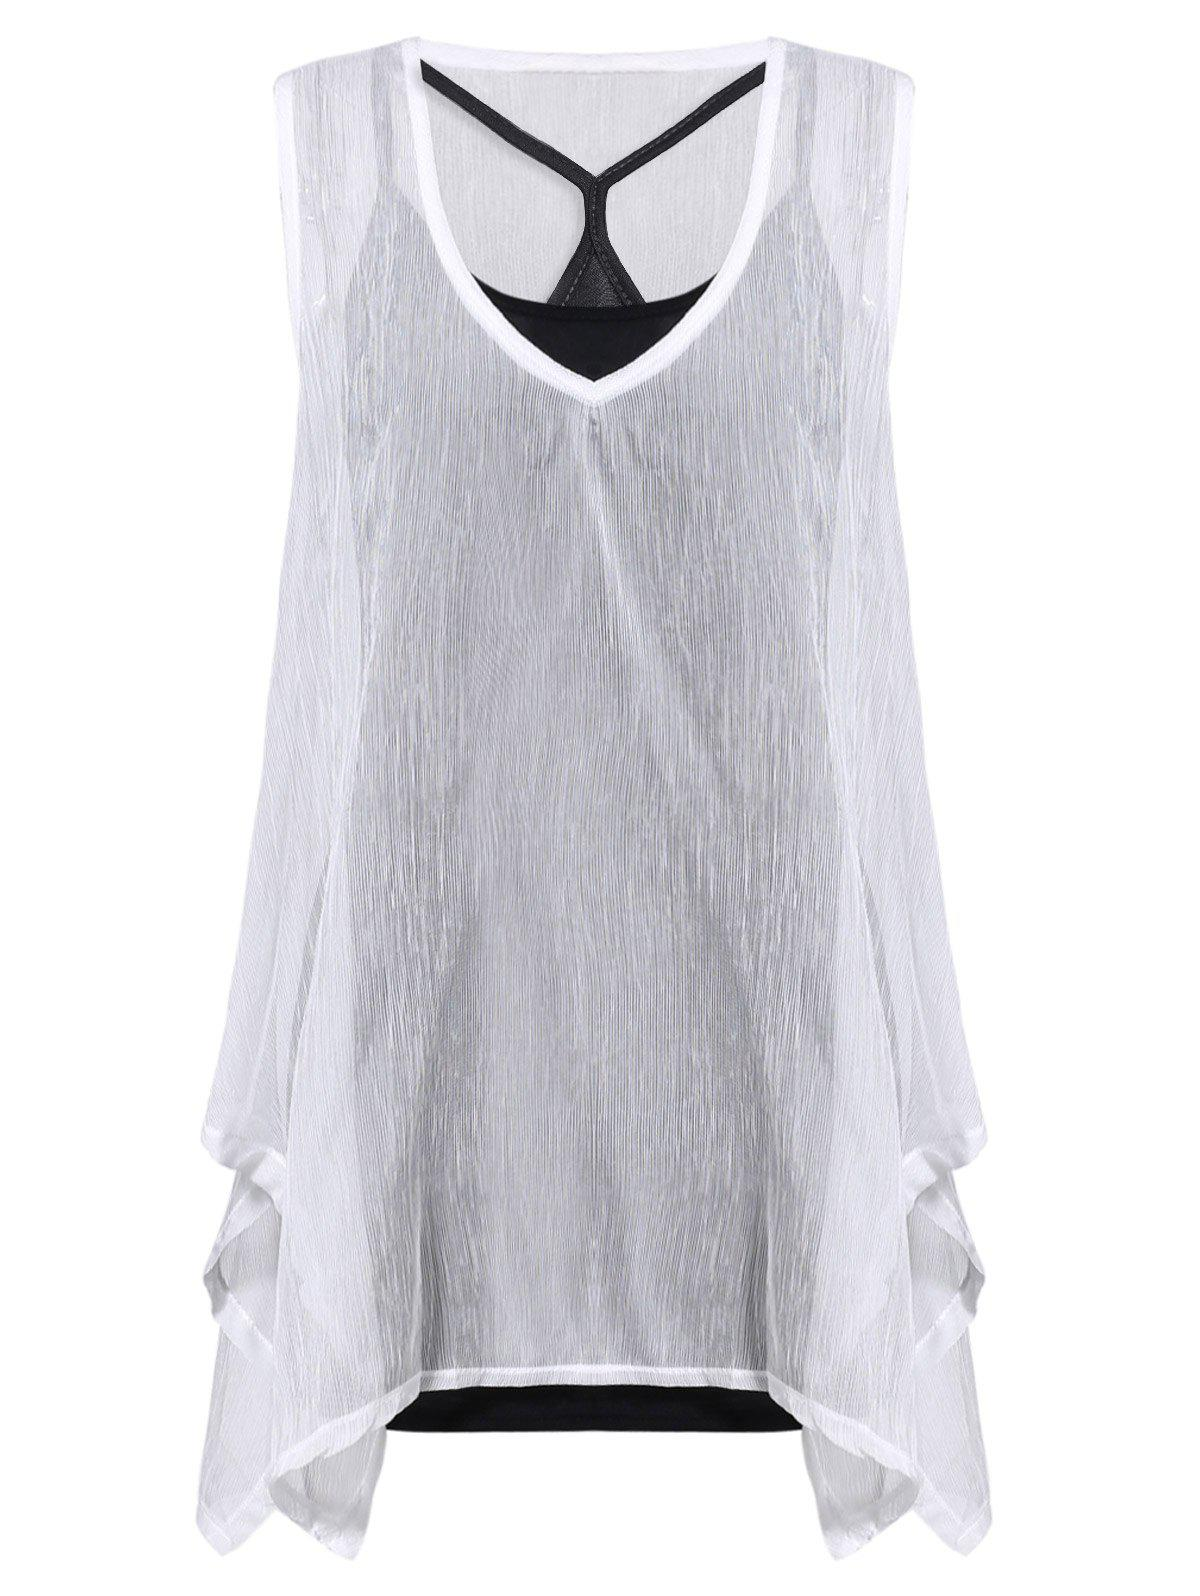 Stylish Women's V-Neck Sleeveless Solid Color Asymmetric Top Twinset - ONE SIZE(FIT SIZE XS TO M) WHITE